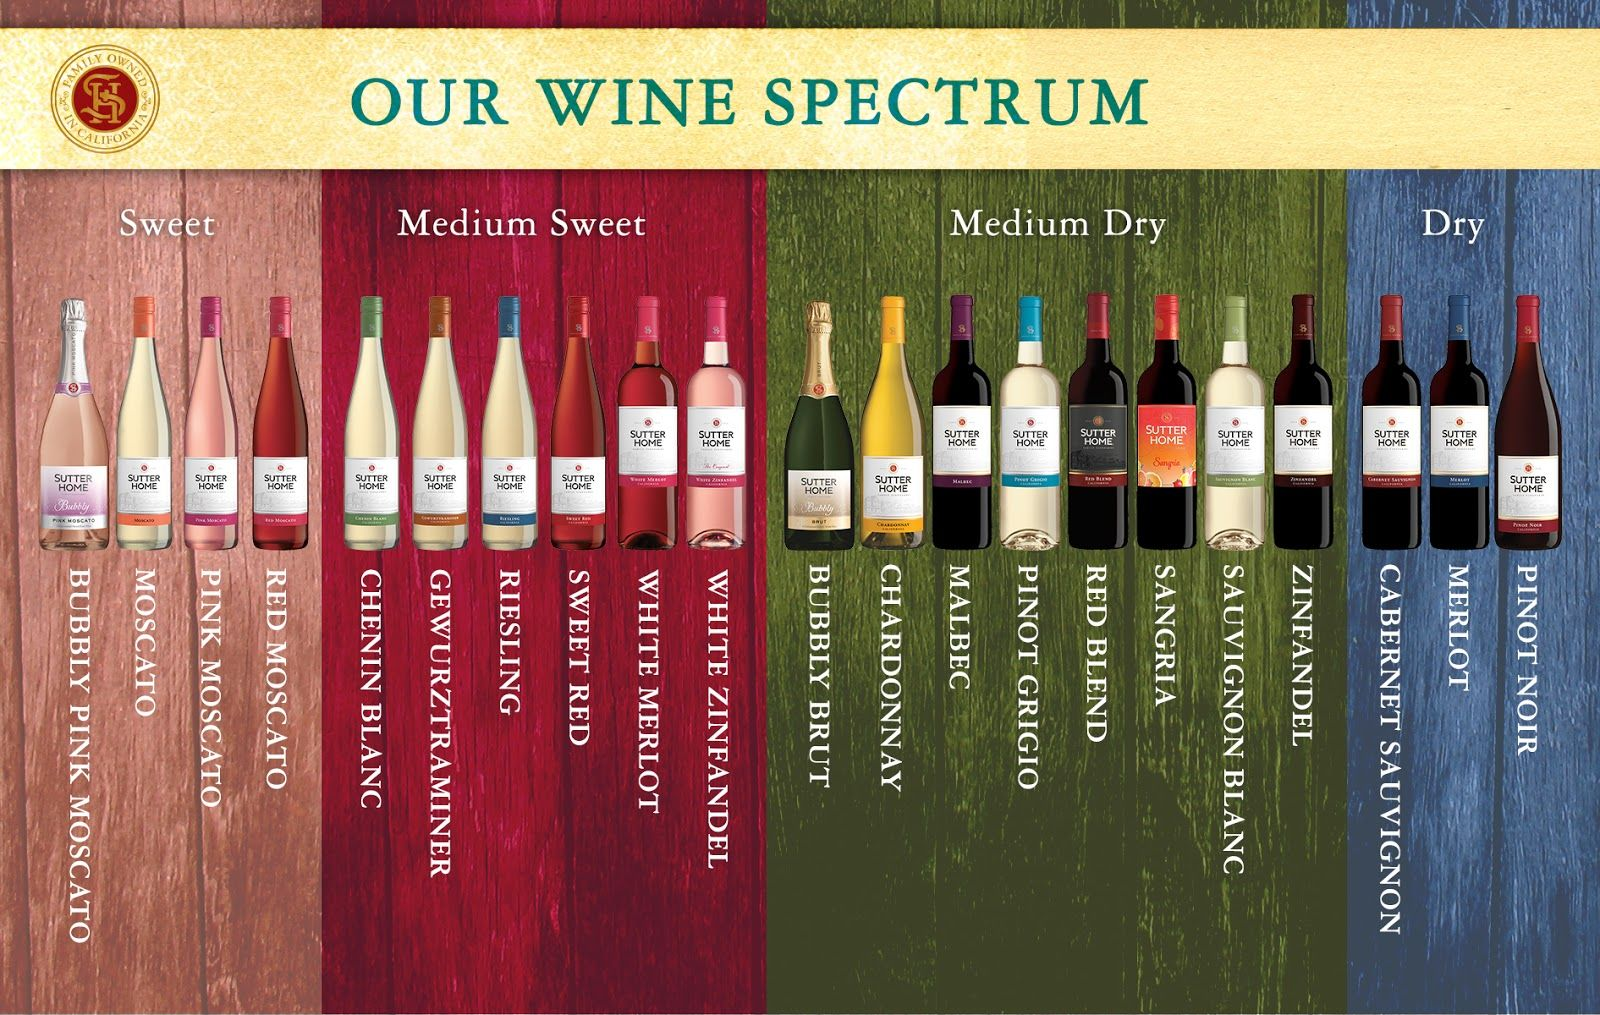 Wine Perspective From The Desert The Desert Wine Guy 2013 Dominican Oaks Cabernet Sauvignon A Real Sugar Bomb Wine Chart Sweet Red Wines Wine Tasting